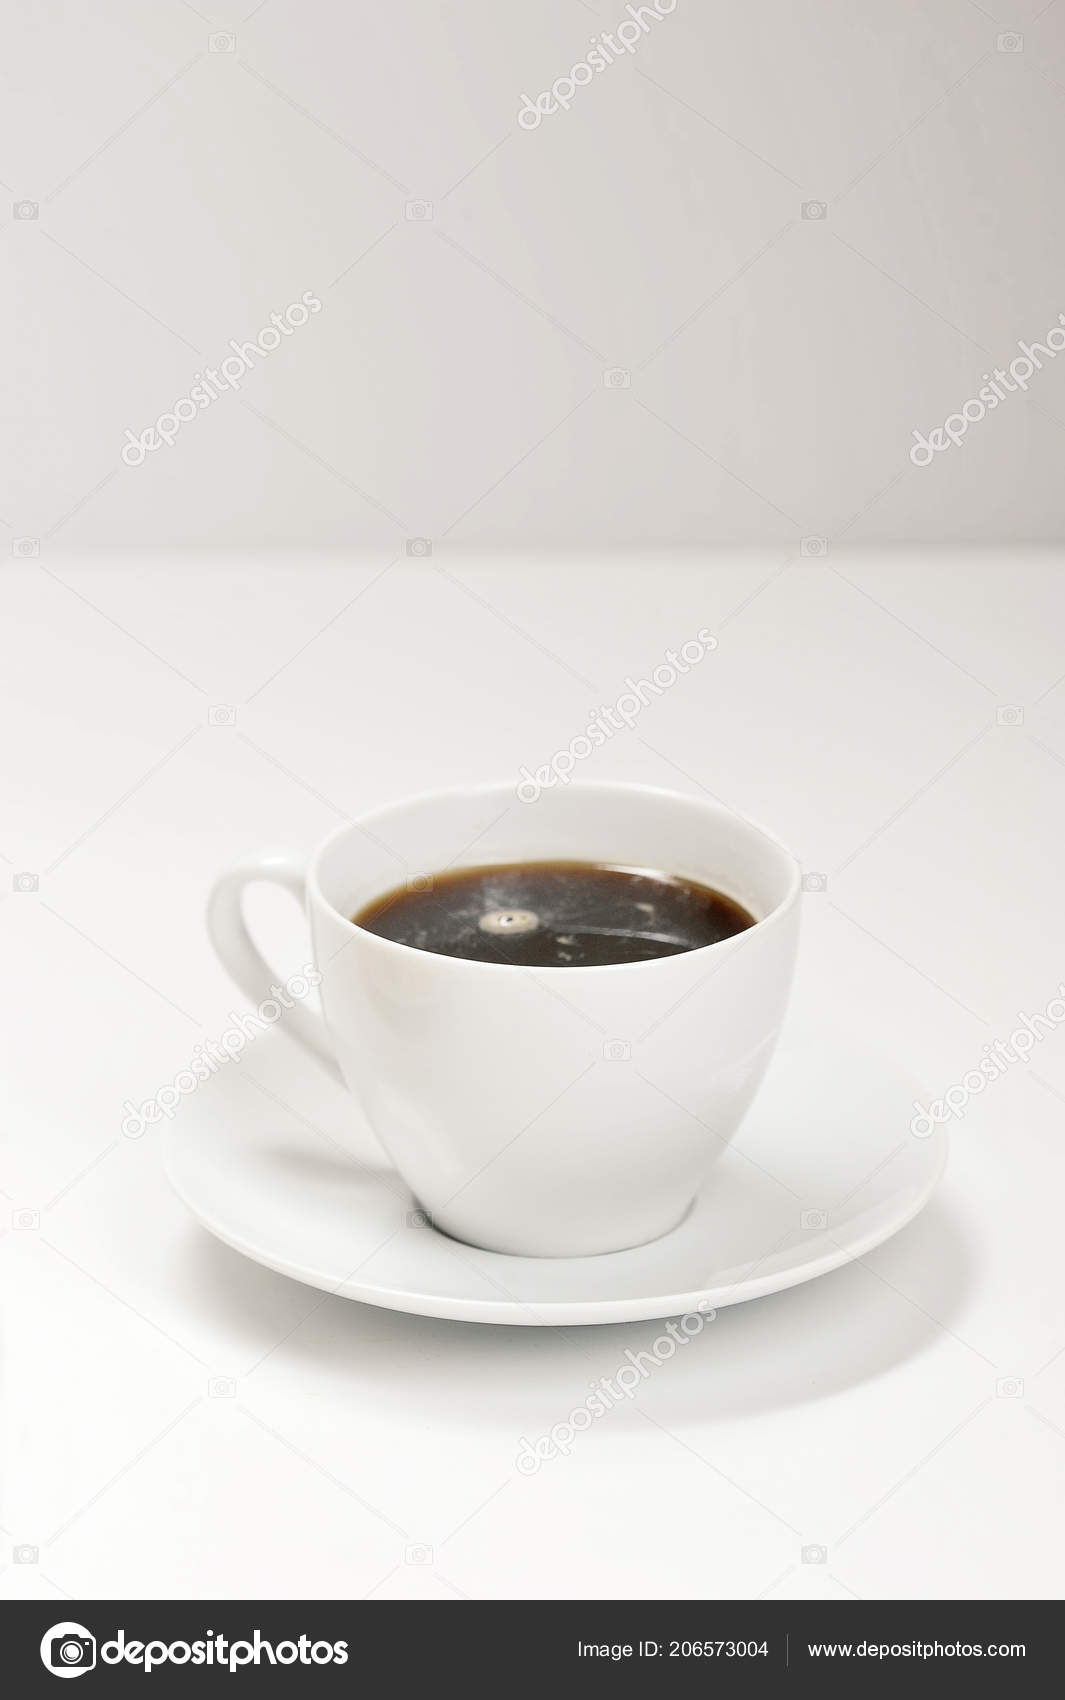 White Cup Saucer Coffee Light Background Template Mockup Design Stock Photo C Forden 206573004